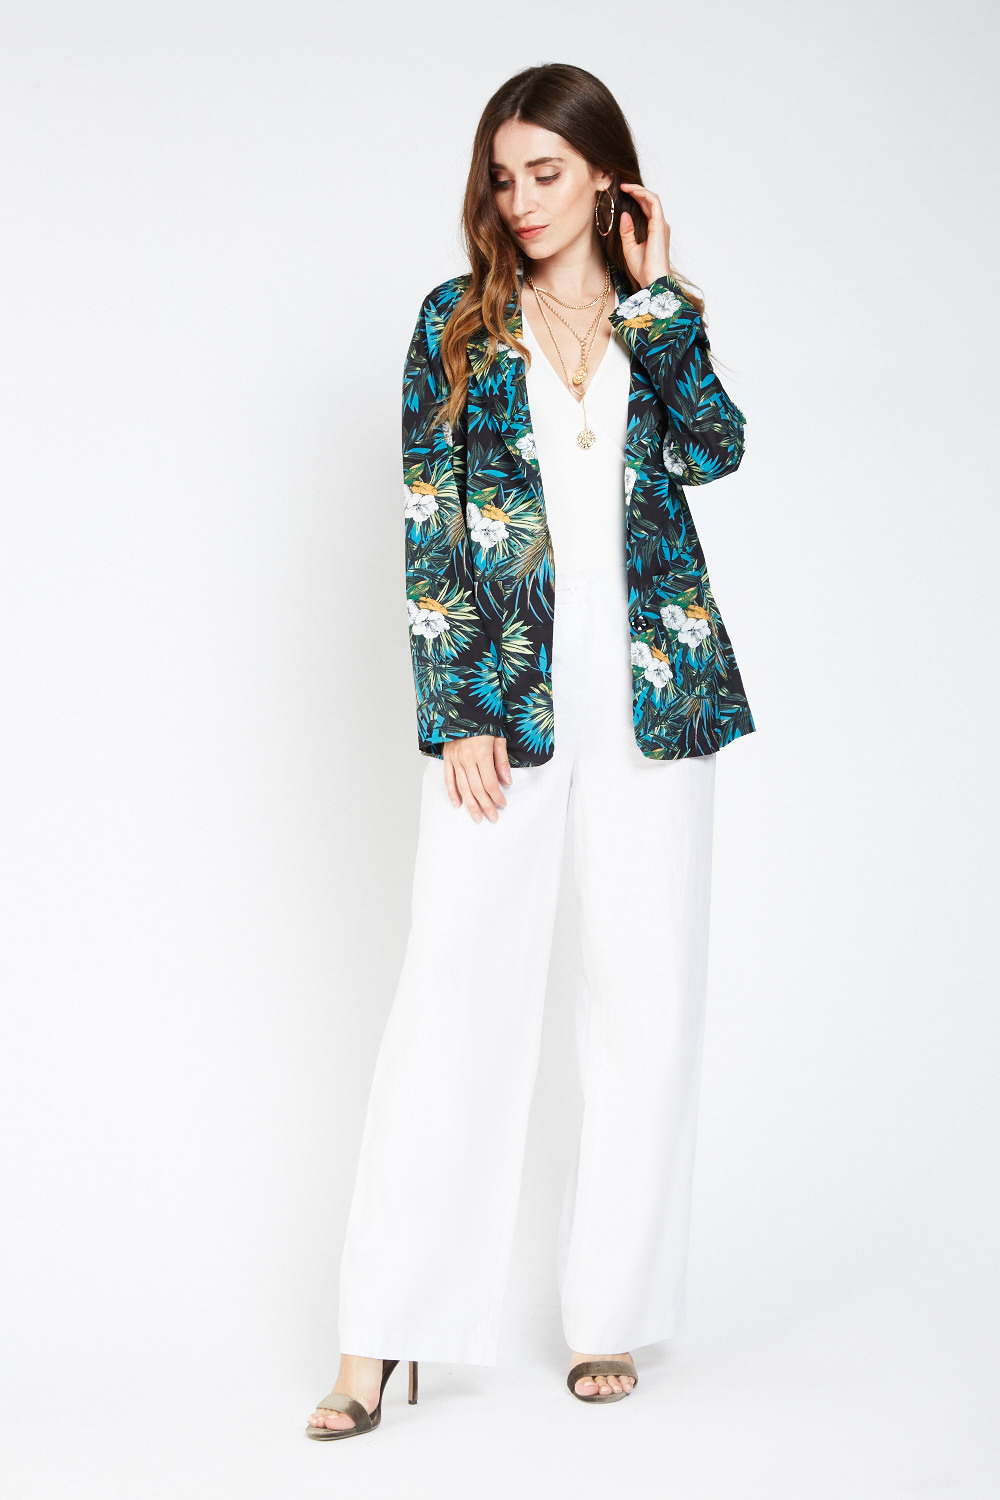 c98a519328 Tropical Printed Lapel Collar Kimono - 3 Colours - Just £5